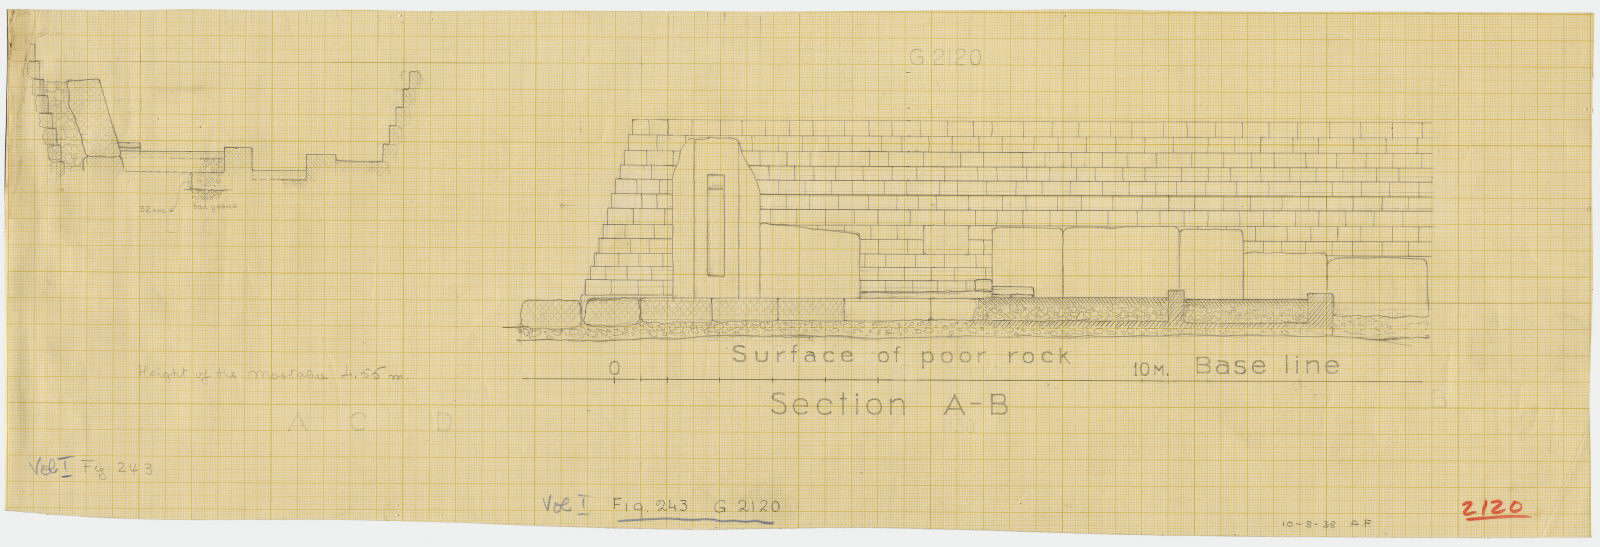 Maps and plans: Section of G 2120